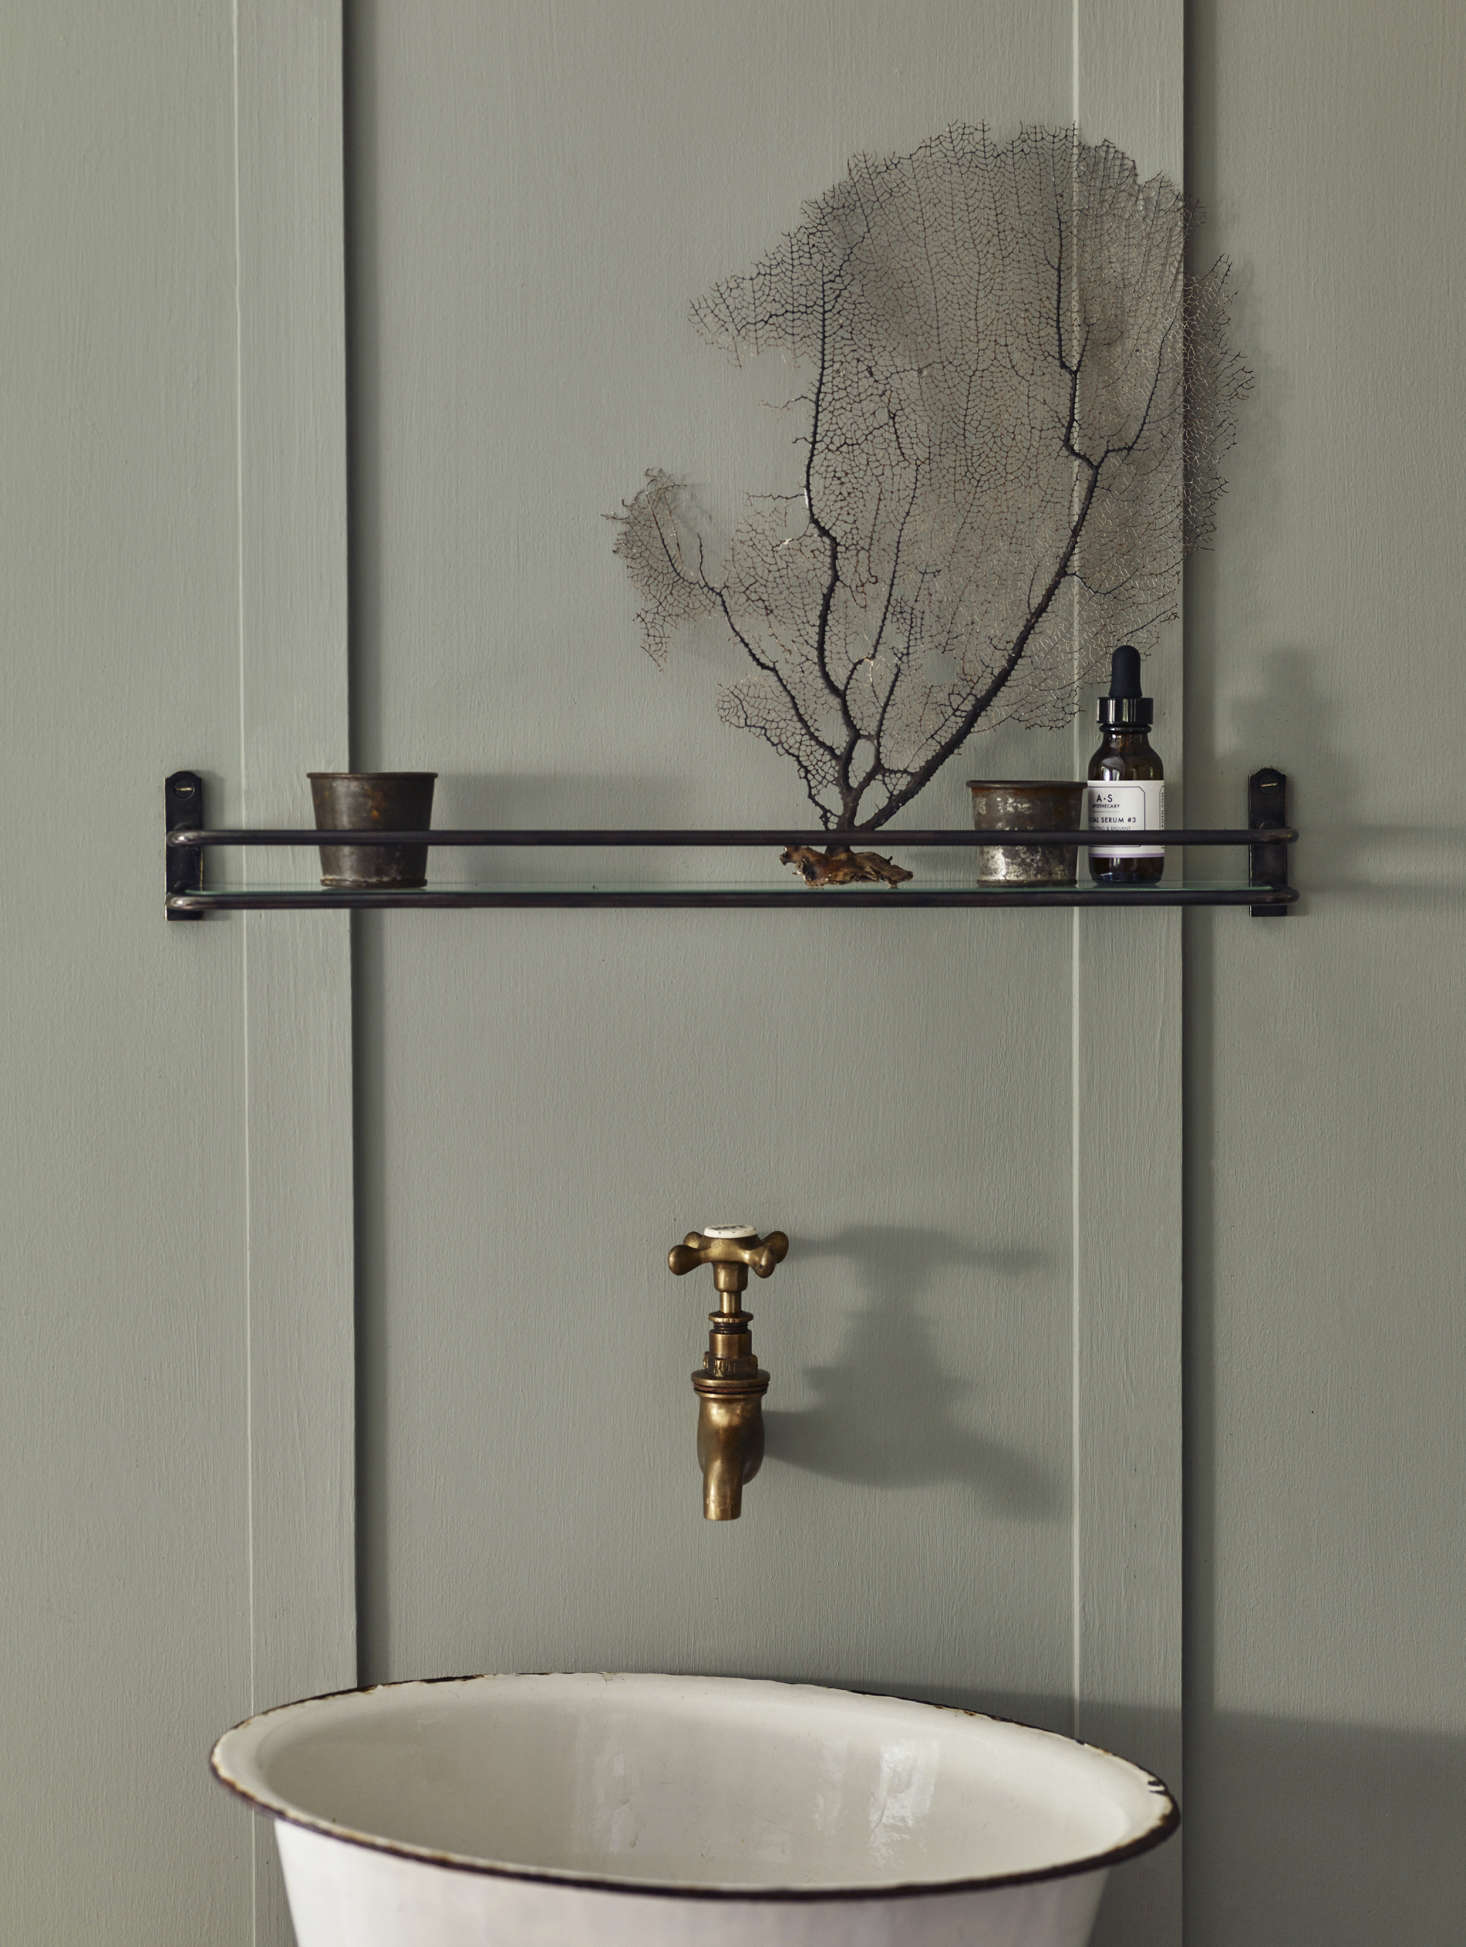 Another Bilton Bathroom Shelf, This One In Blackened Bronze. With A Simple  Glass Inset